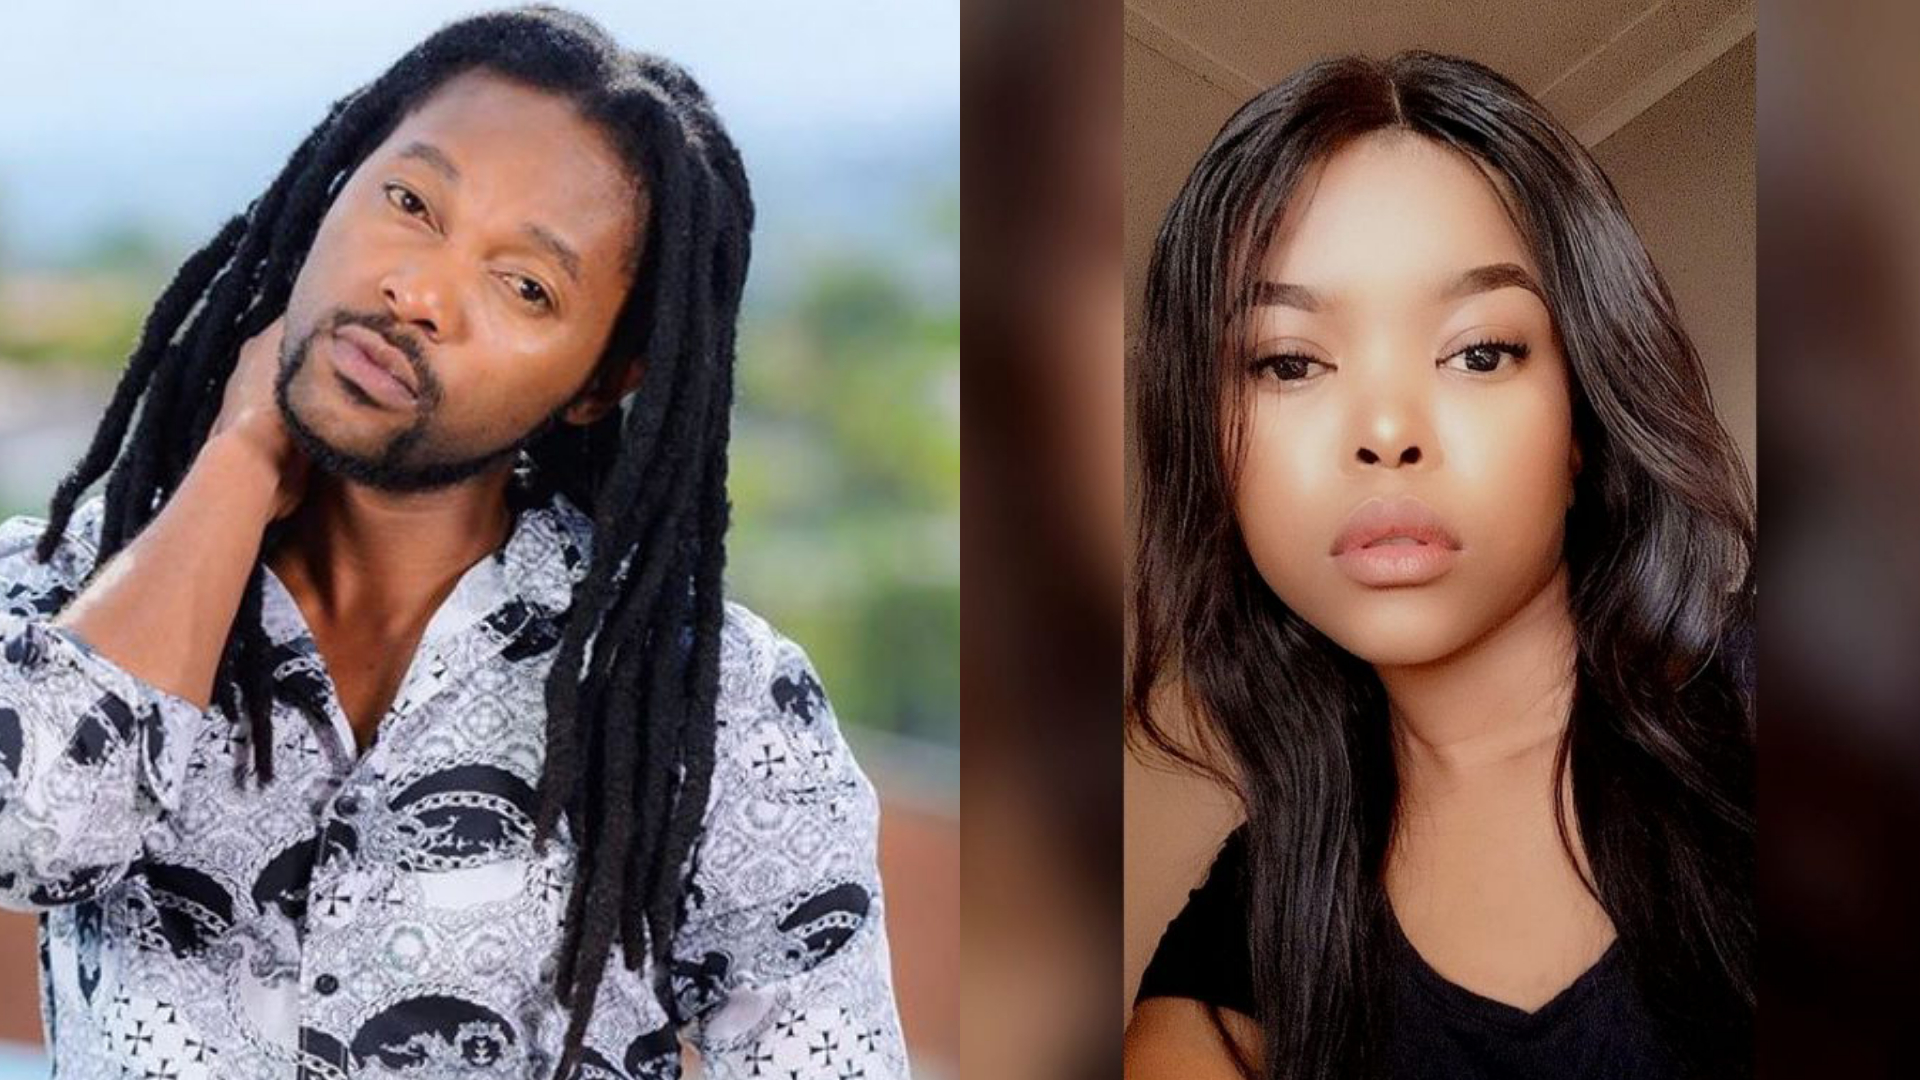 Uzalo Actor Sbu's Real Girlfriend Gifted With Brains And Beauty